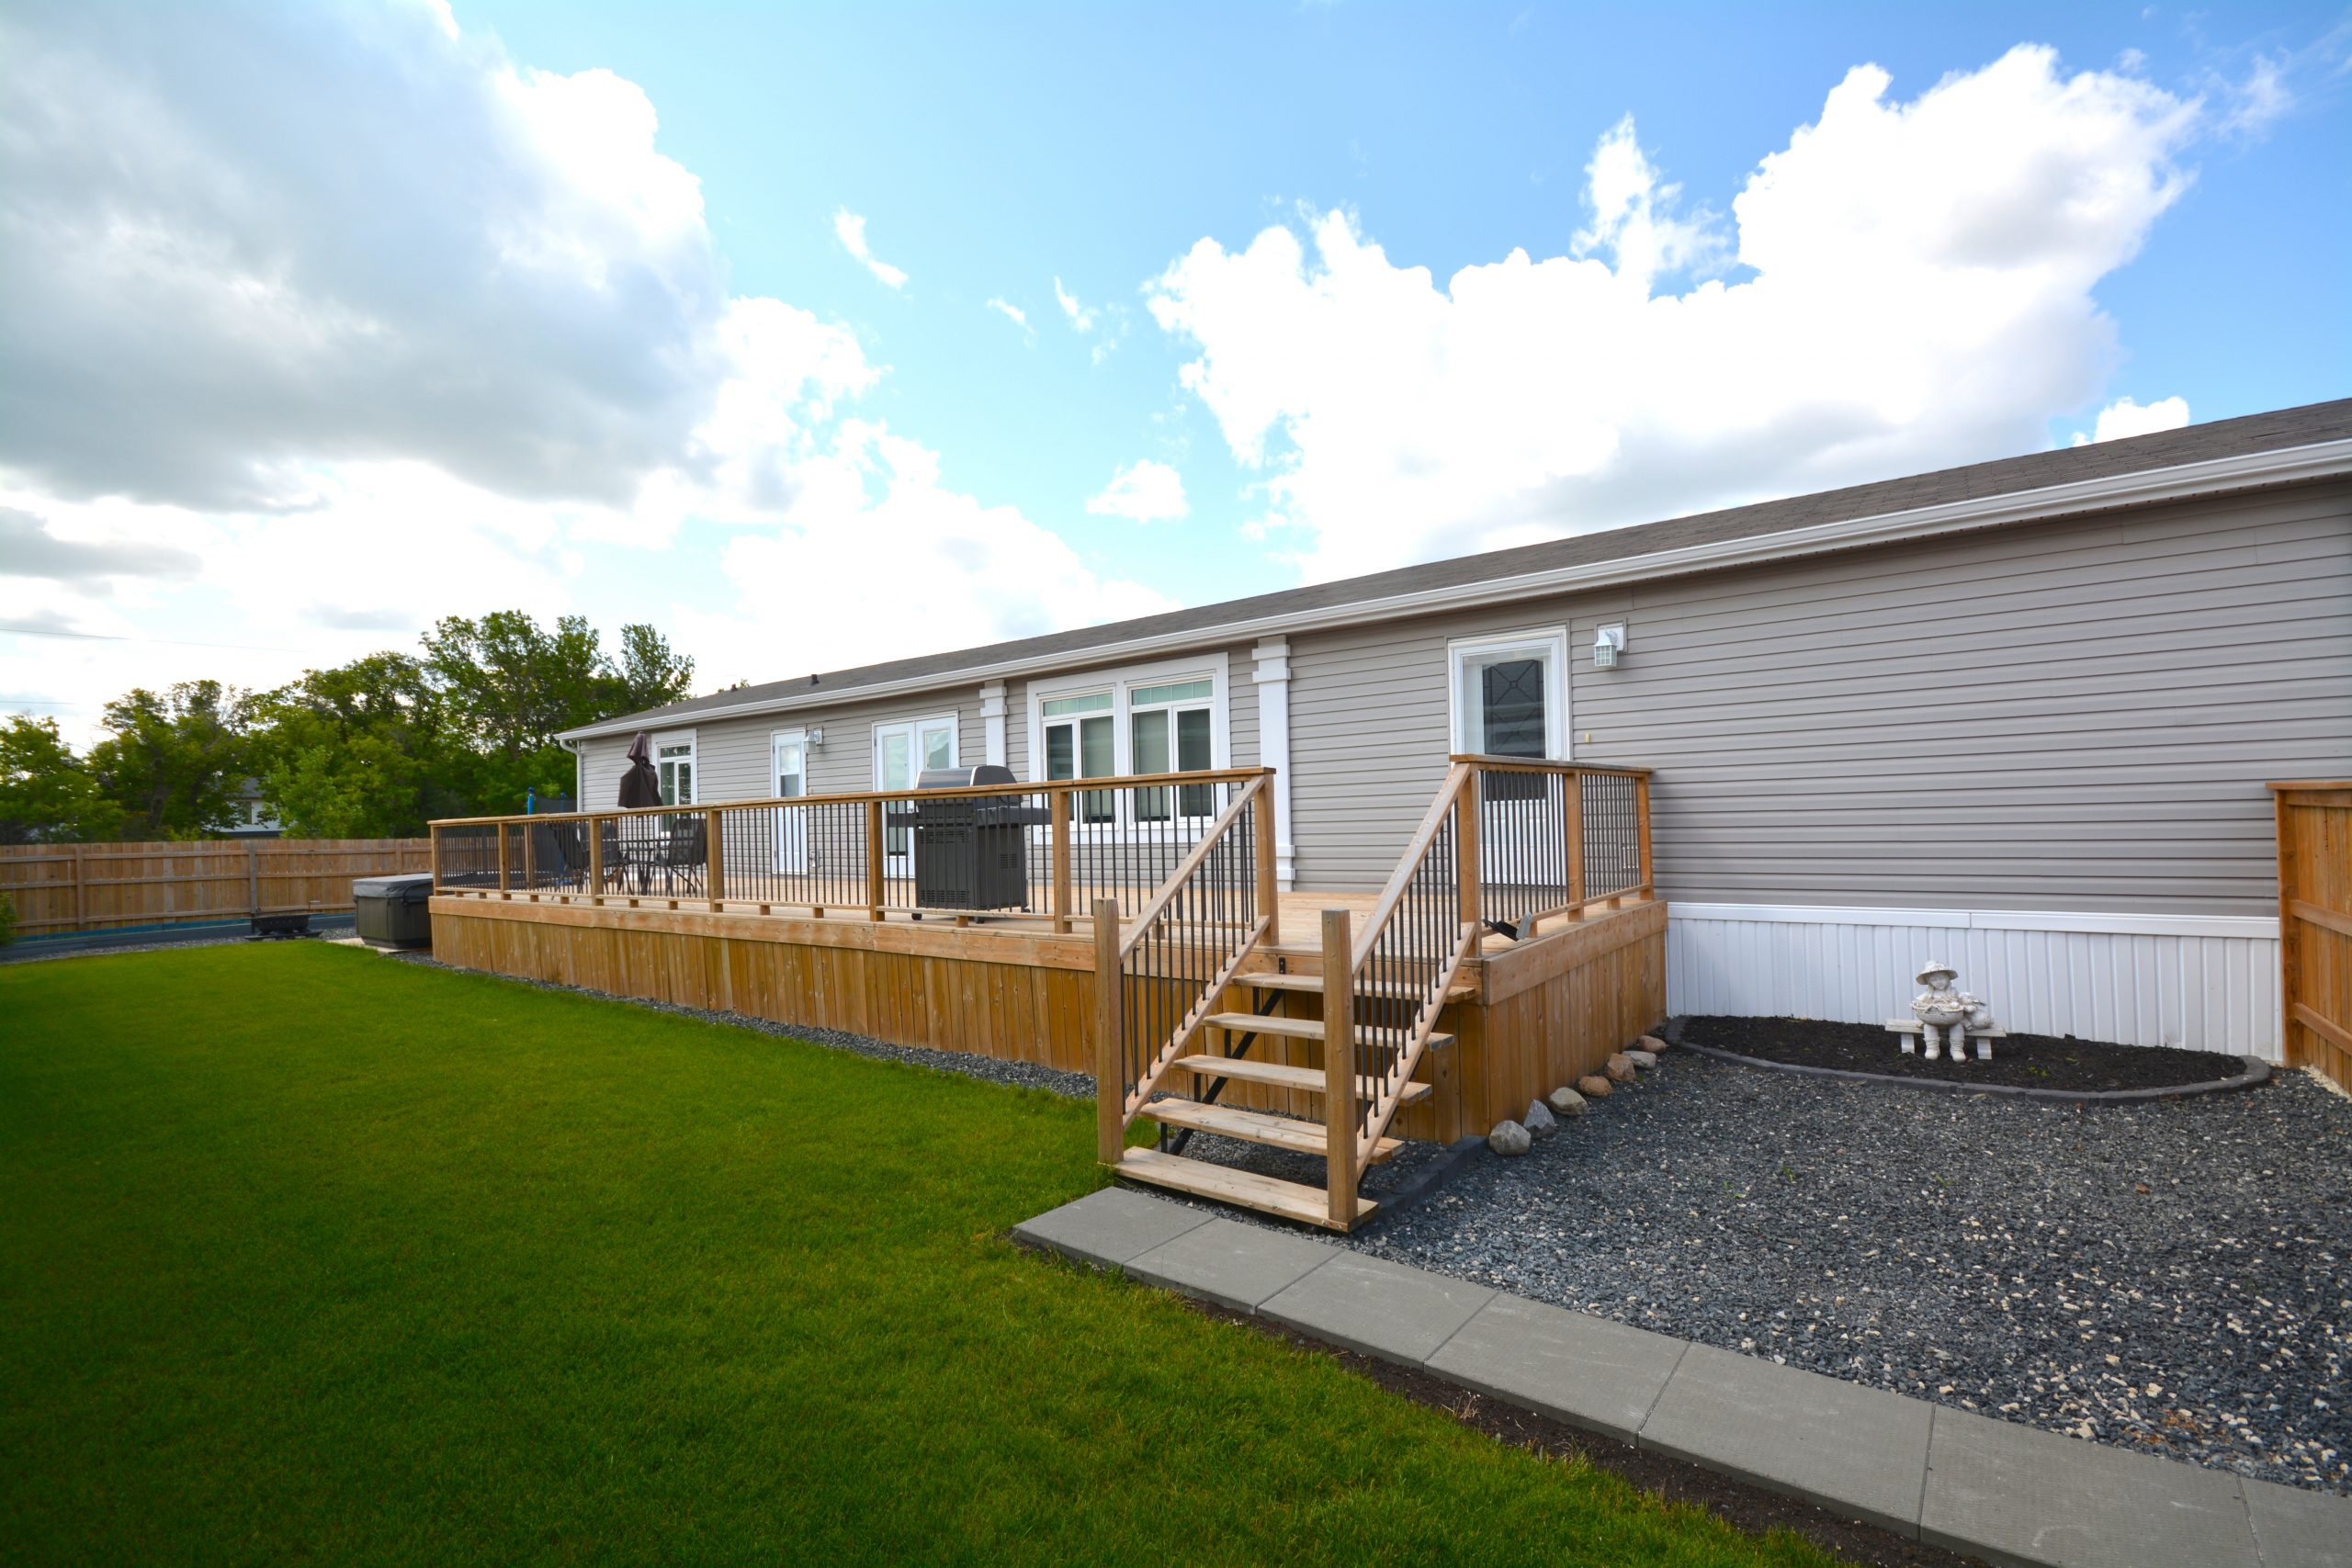 9 Timber Lane – Pine Ridge Trailer Park For Sale